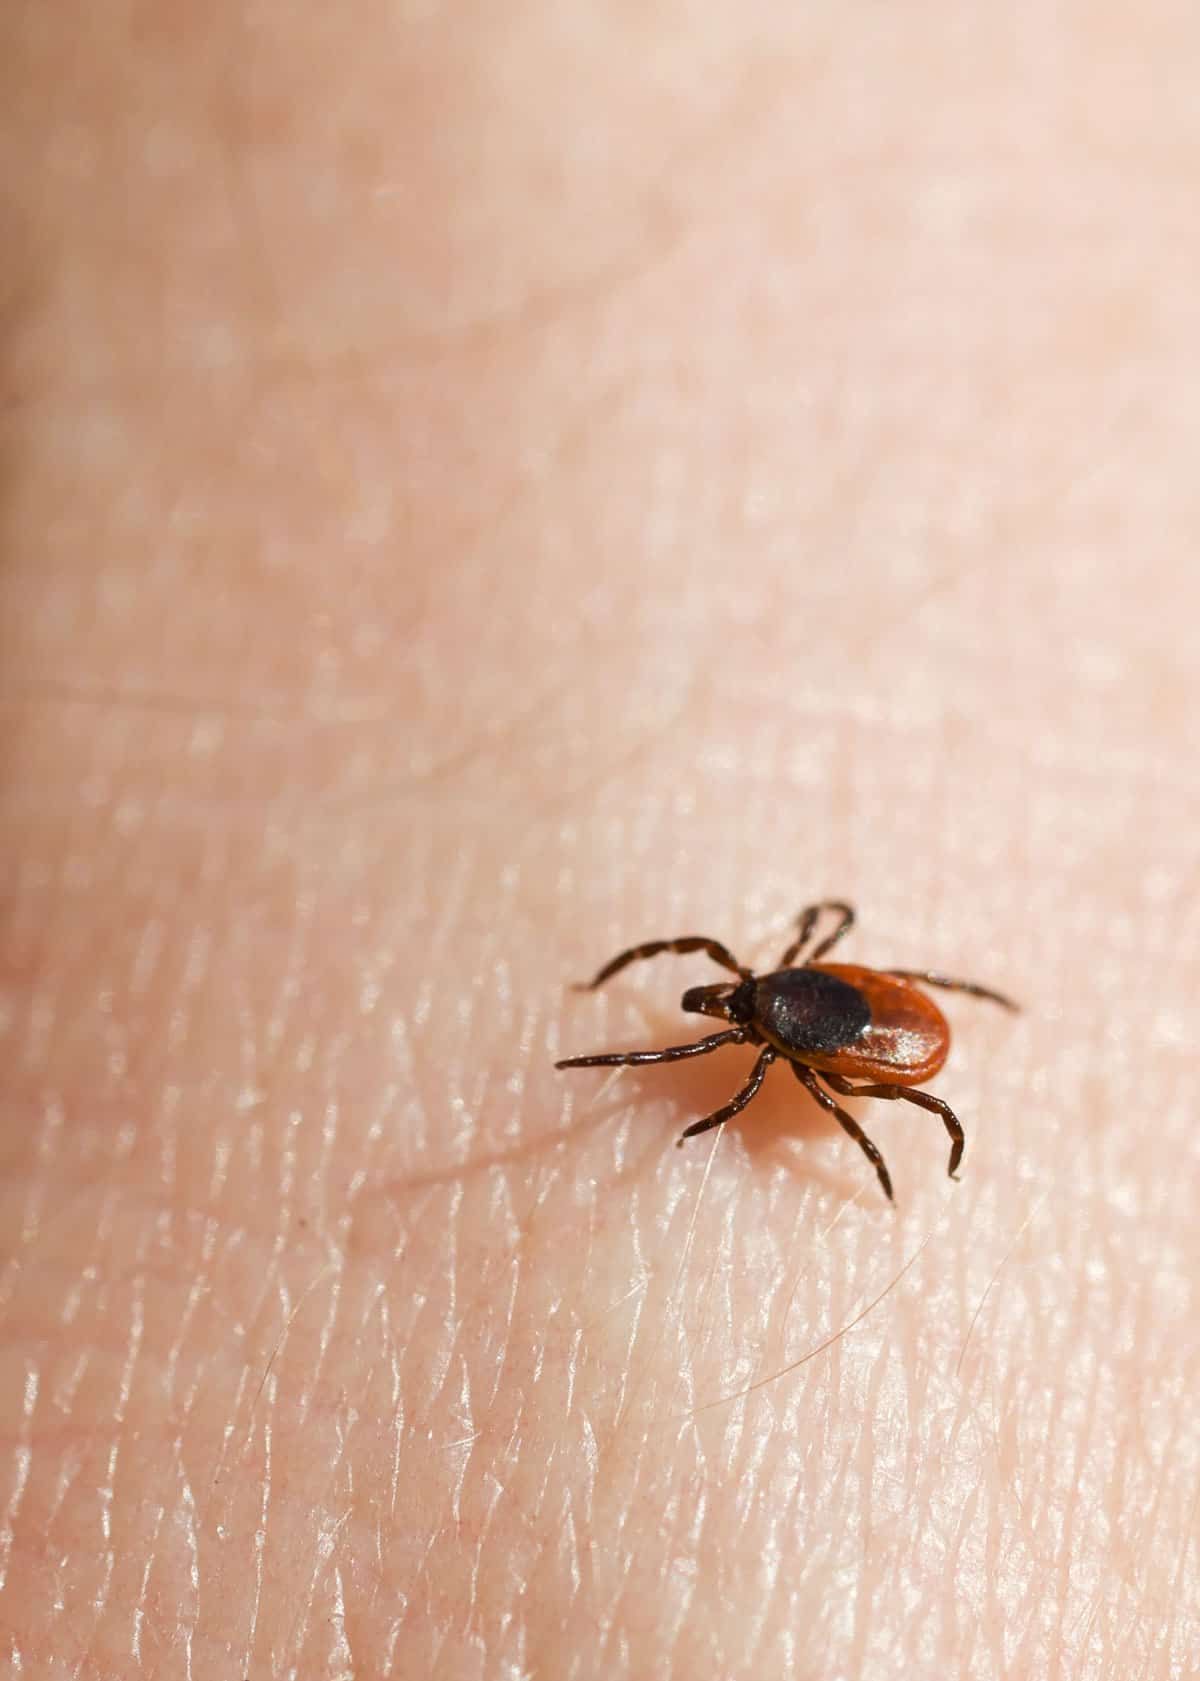 How To Get A Tick Head Out Of Your Body